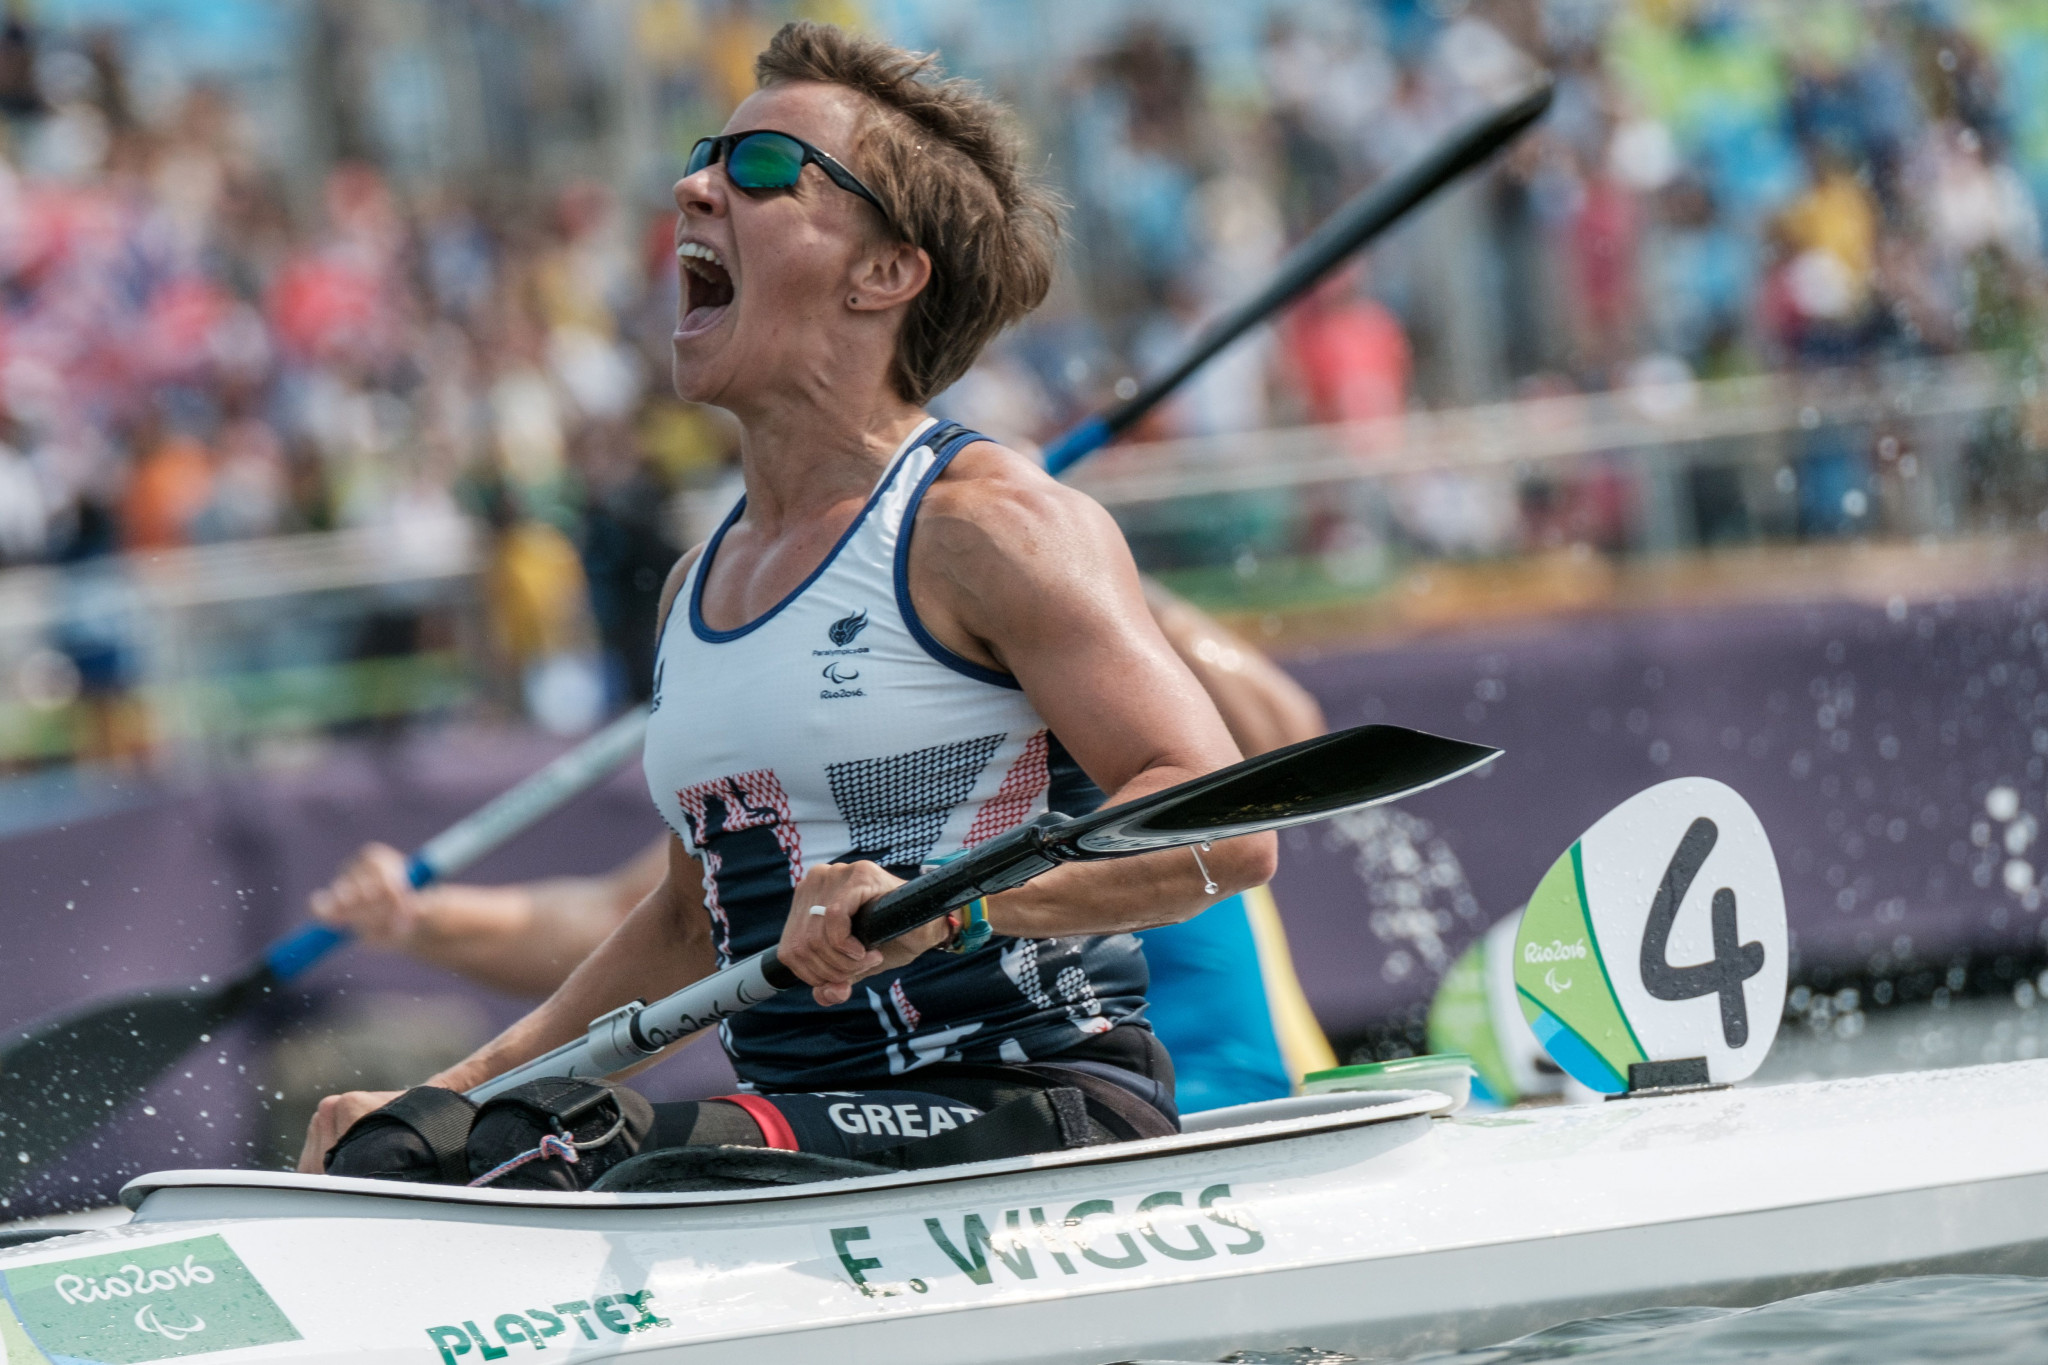 Wiggs and McGrath defend VL2 and VL3 titles at ICF Paracanoe World Championships